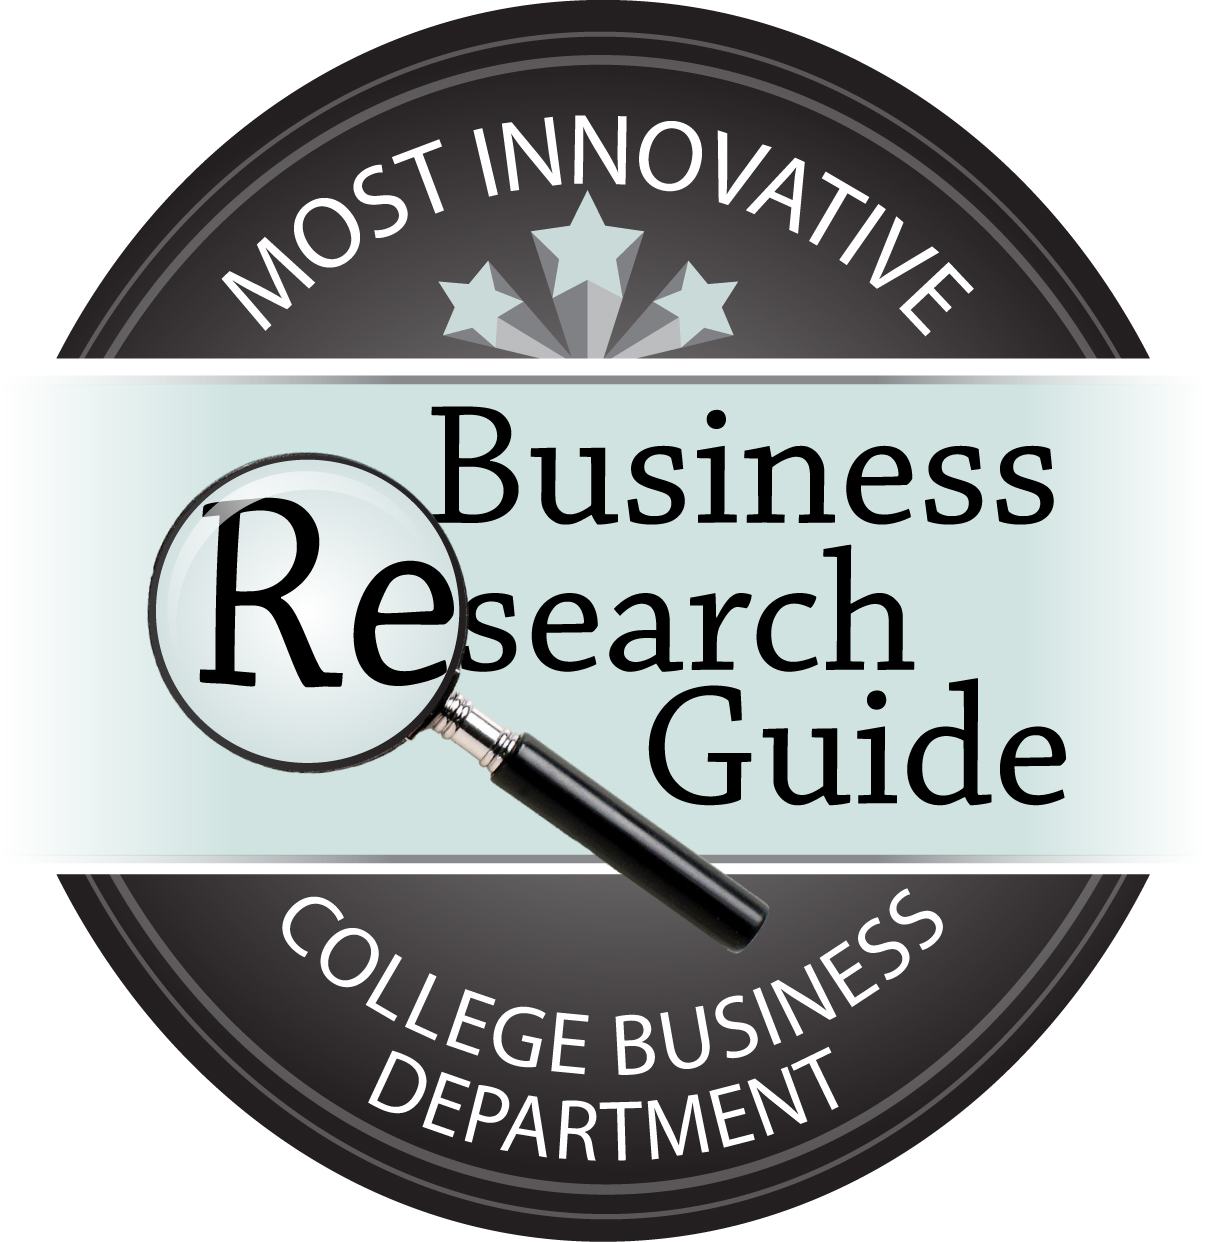 most innovative small college business departments  click here for high resolution badge